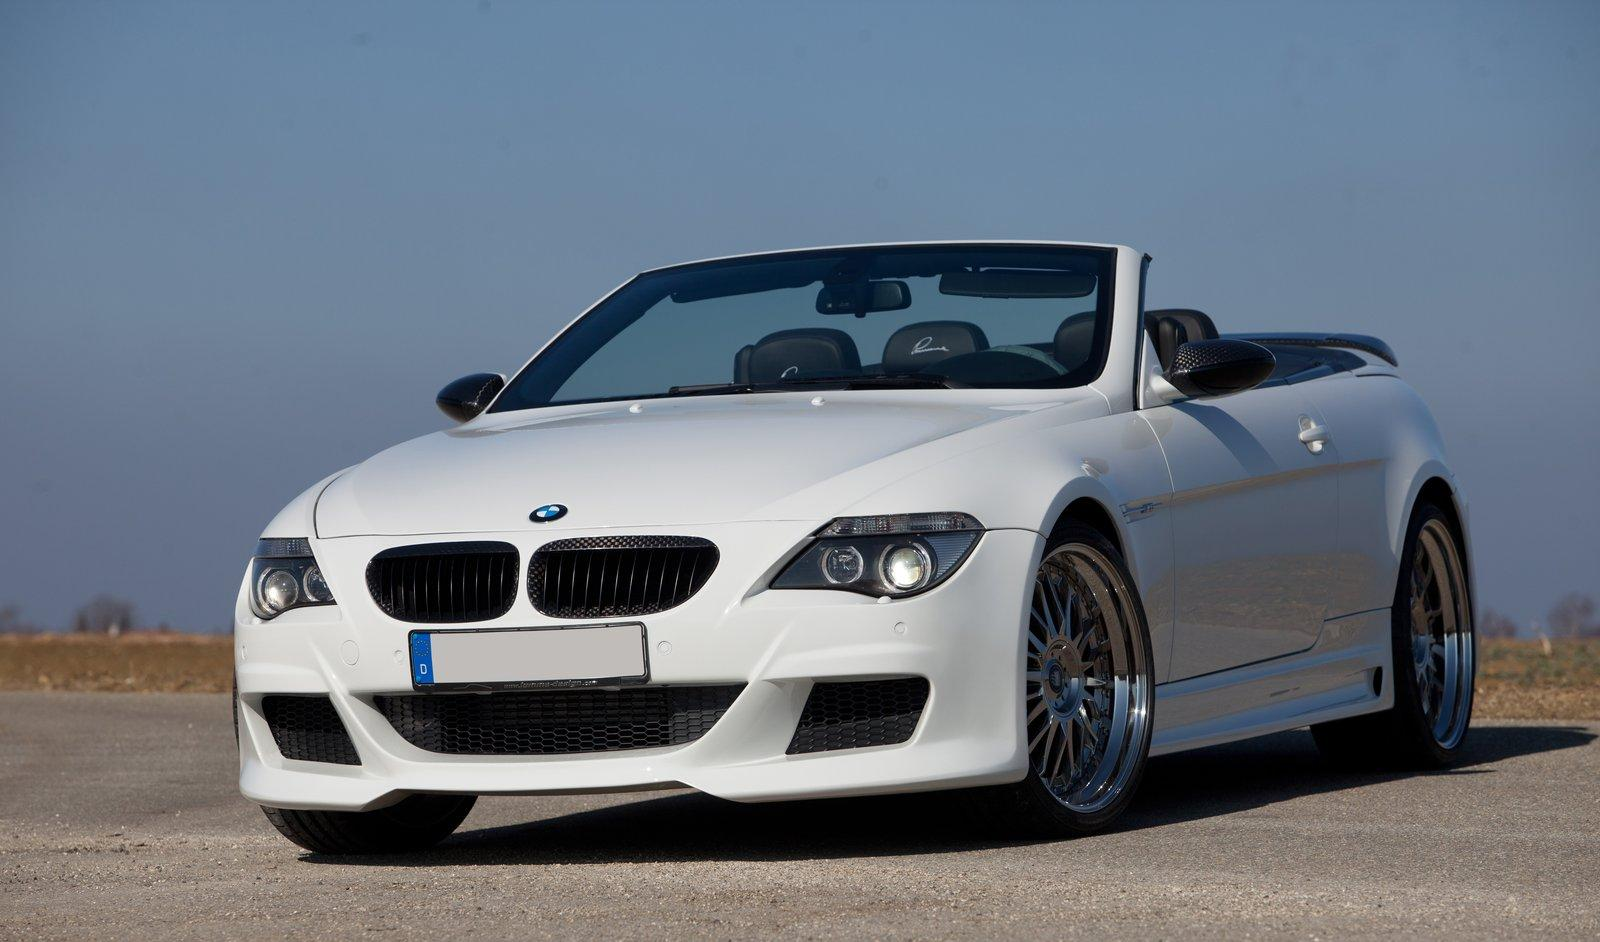 The German tuning firm Lumma Design has turned to the BMW 6-Series Cabriolet